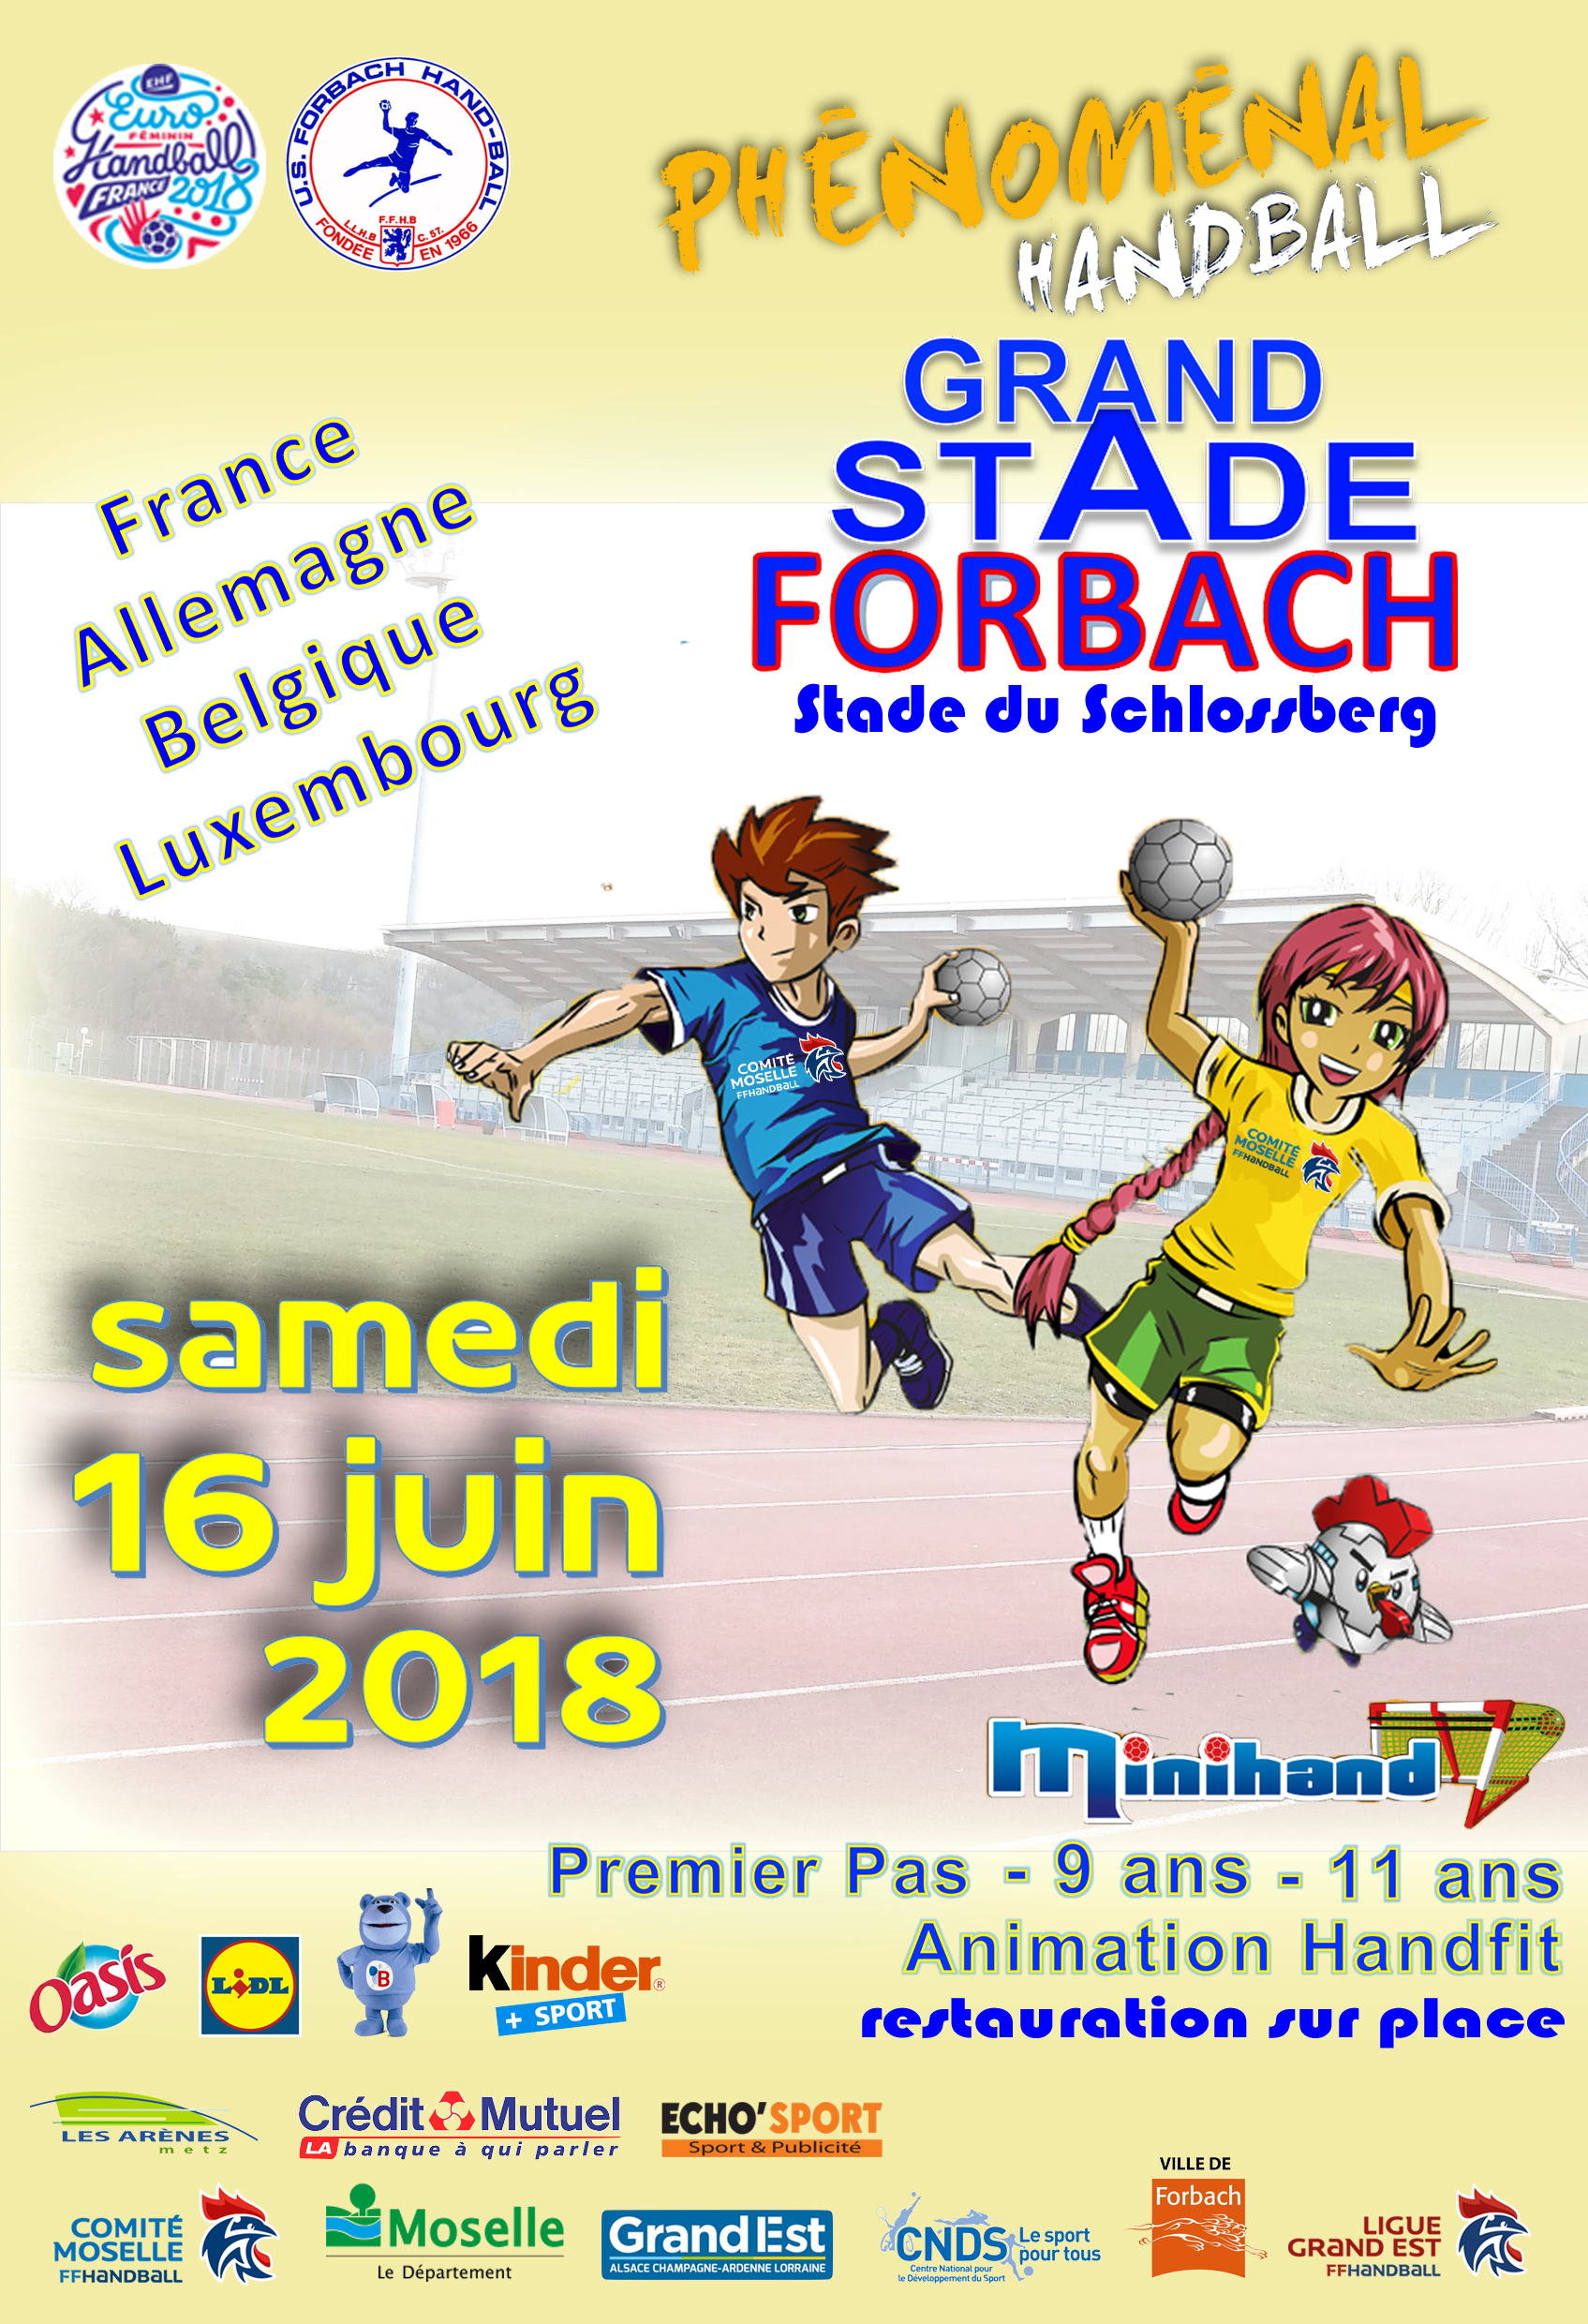 AFFICHE GRAND STADE A FORBACH 20158